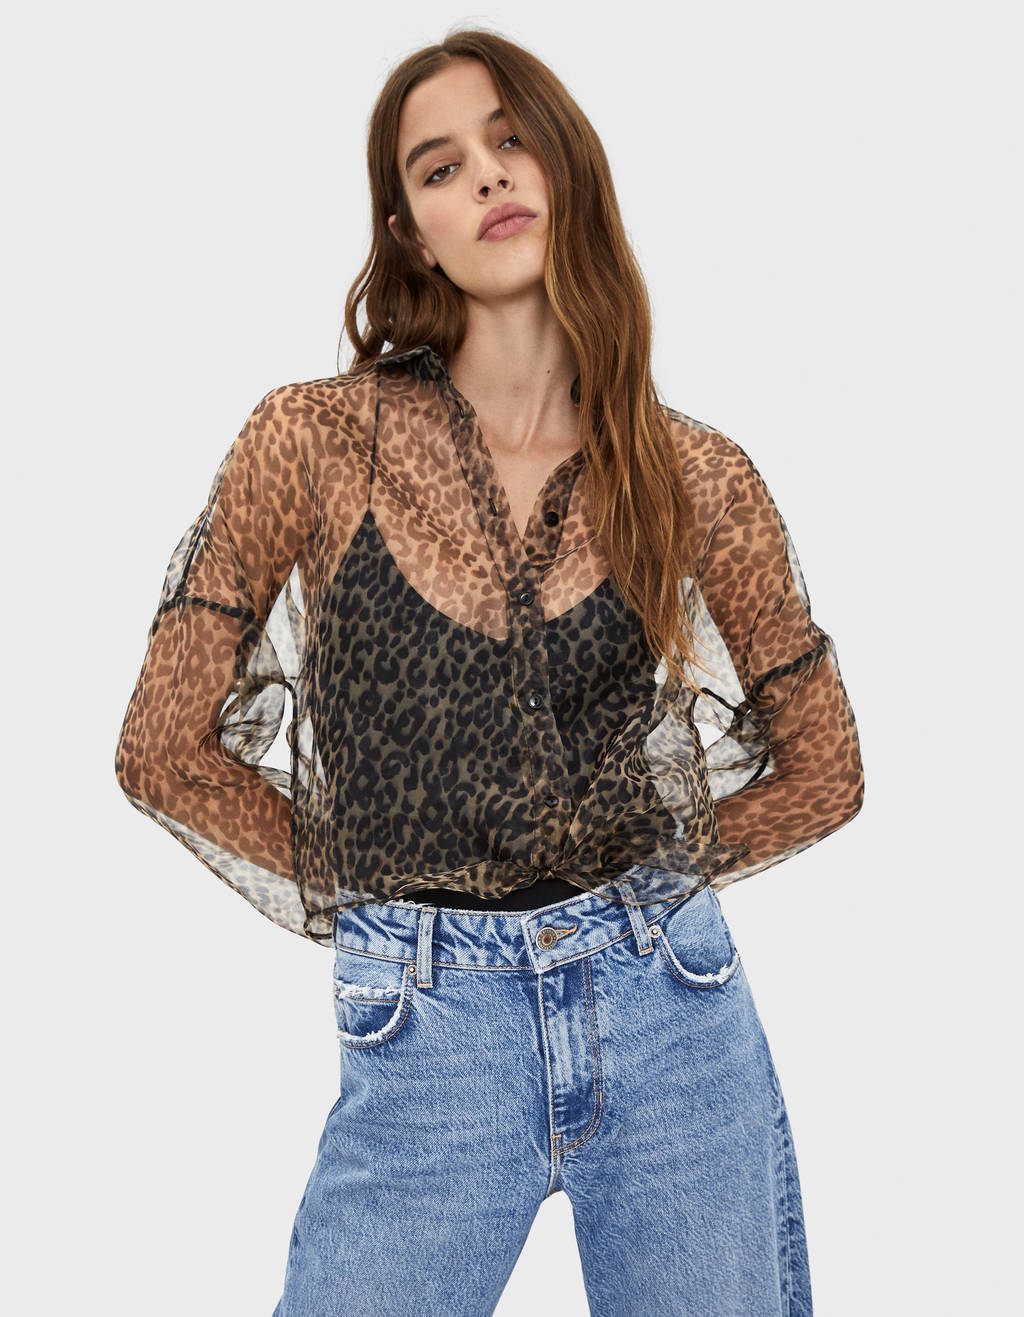 Leopard print shirt with sheer detail